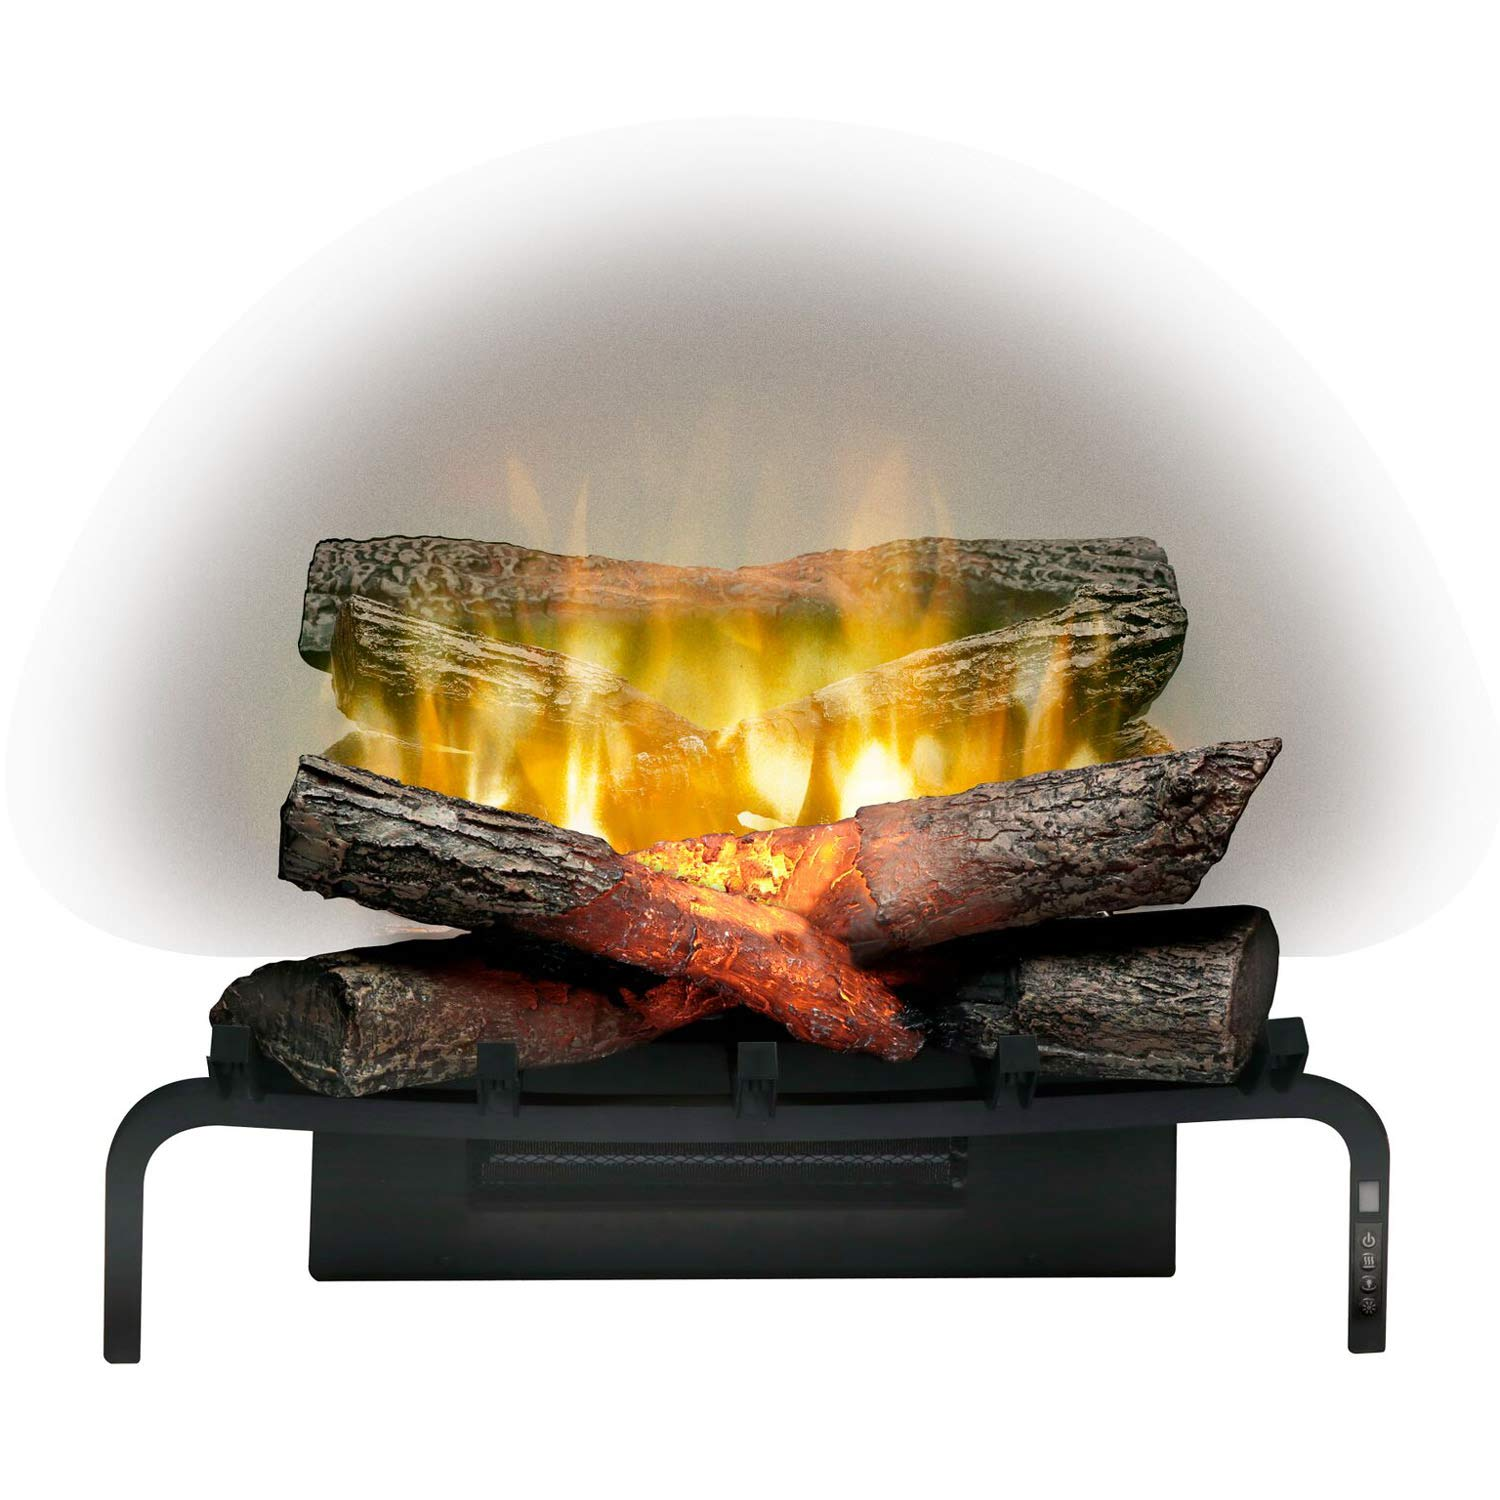 Astonishing Dimplex Revillusion 20 Inch Electric Fireplace Log Set Rlg20 Home Interior And Landscaping Eliaenasavecom